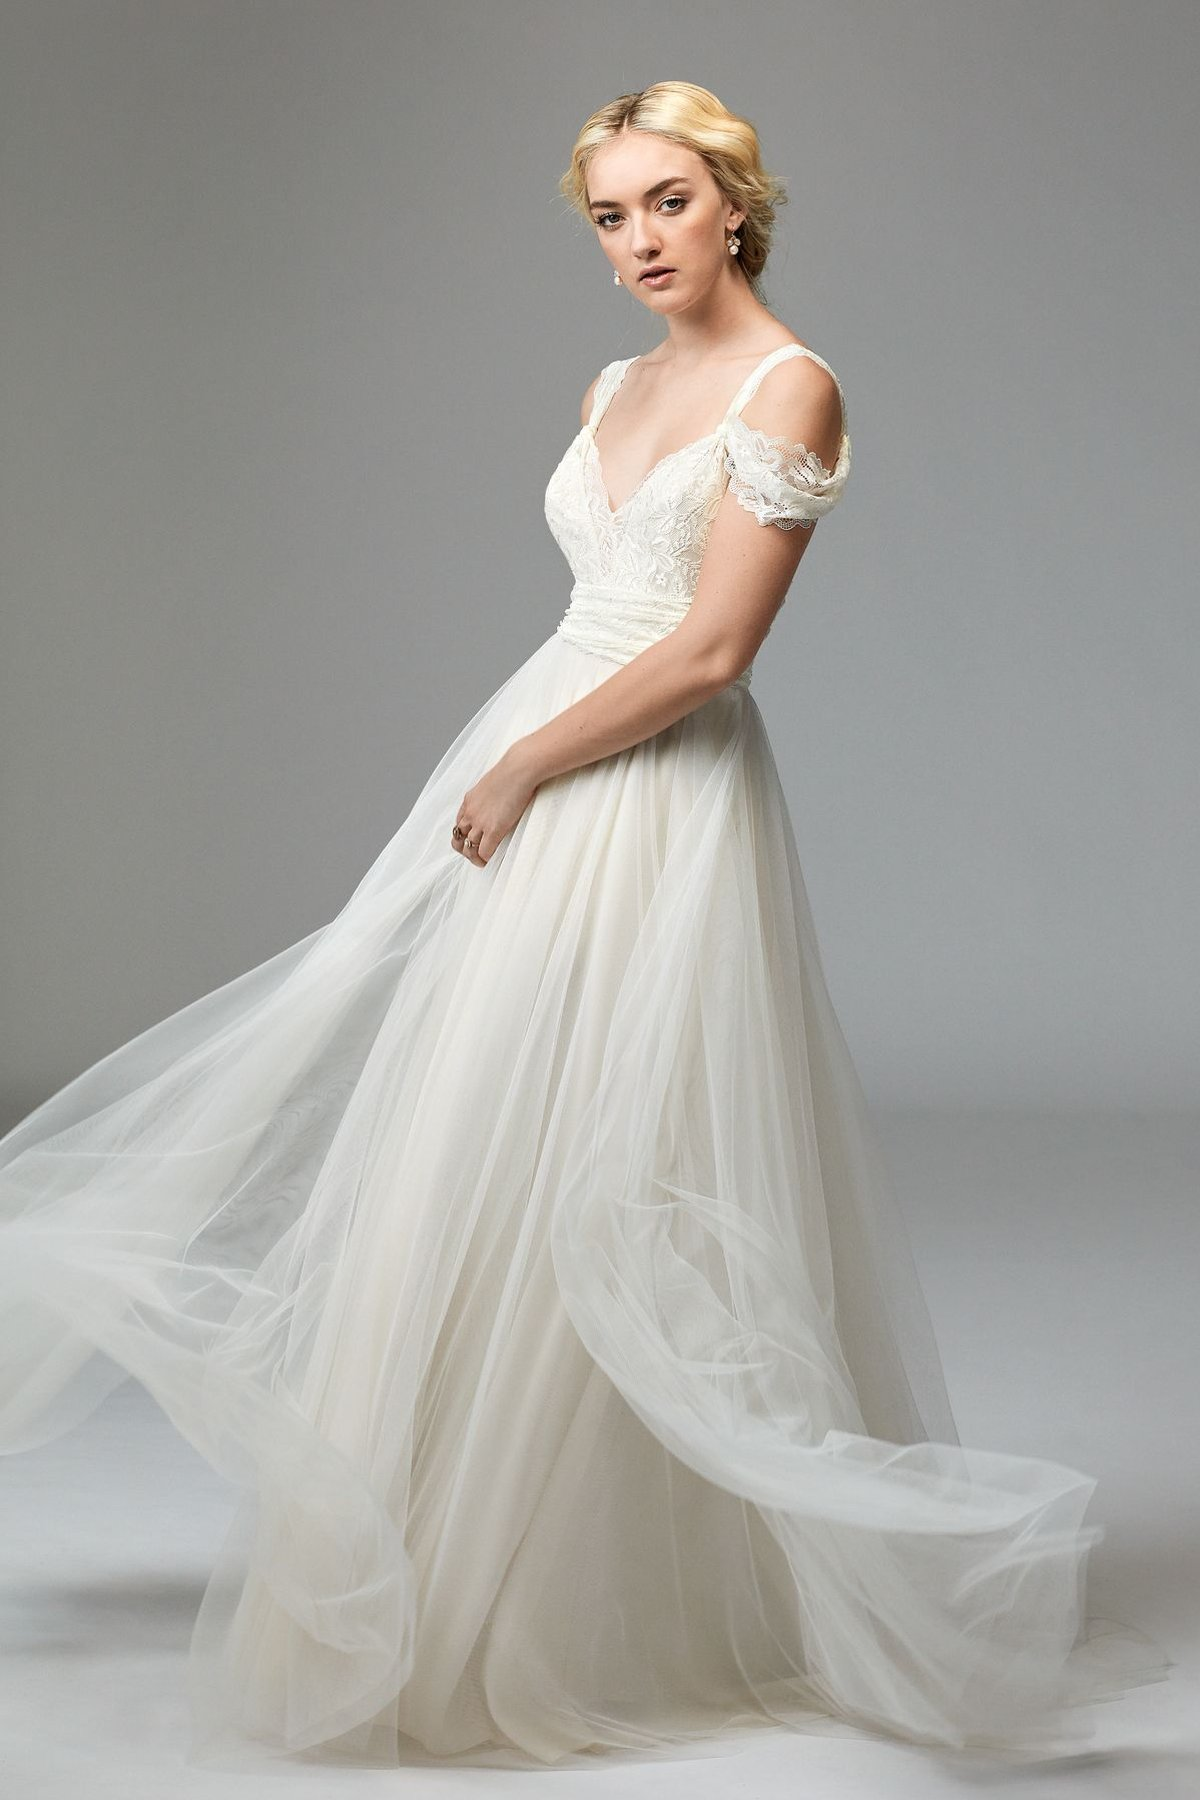 *WEDDING DRESS OF THE WEEK* Tilda from Willowby by Watters ...